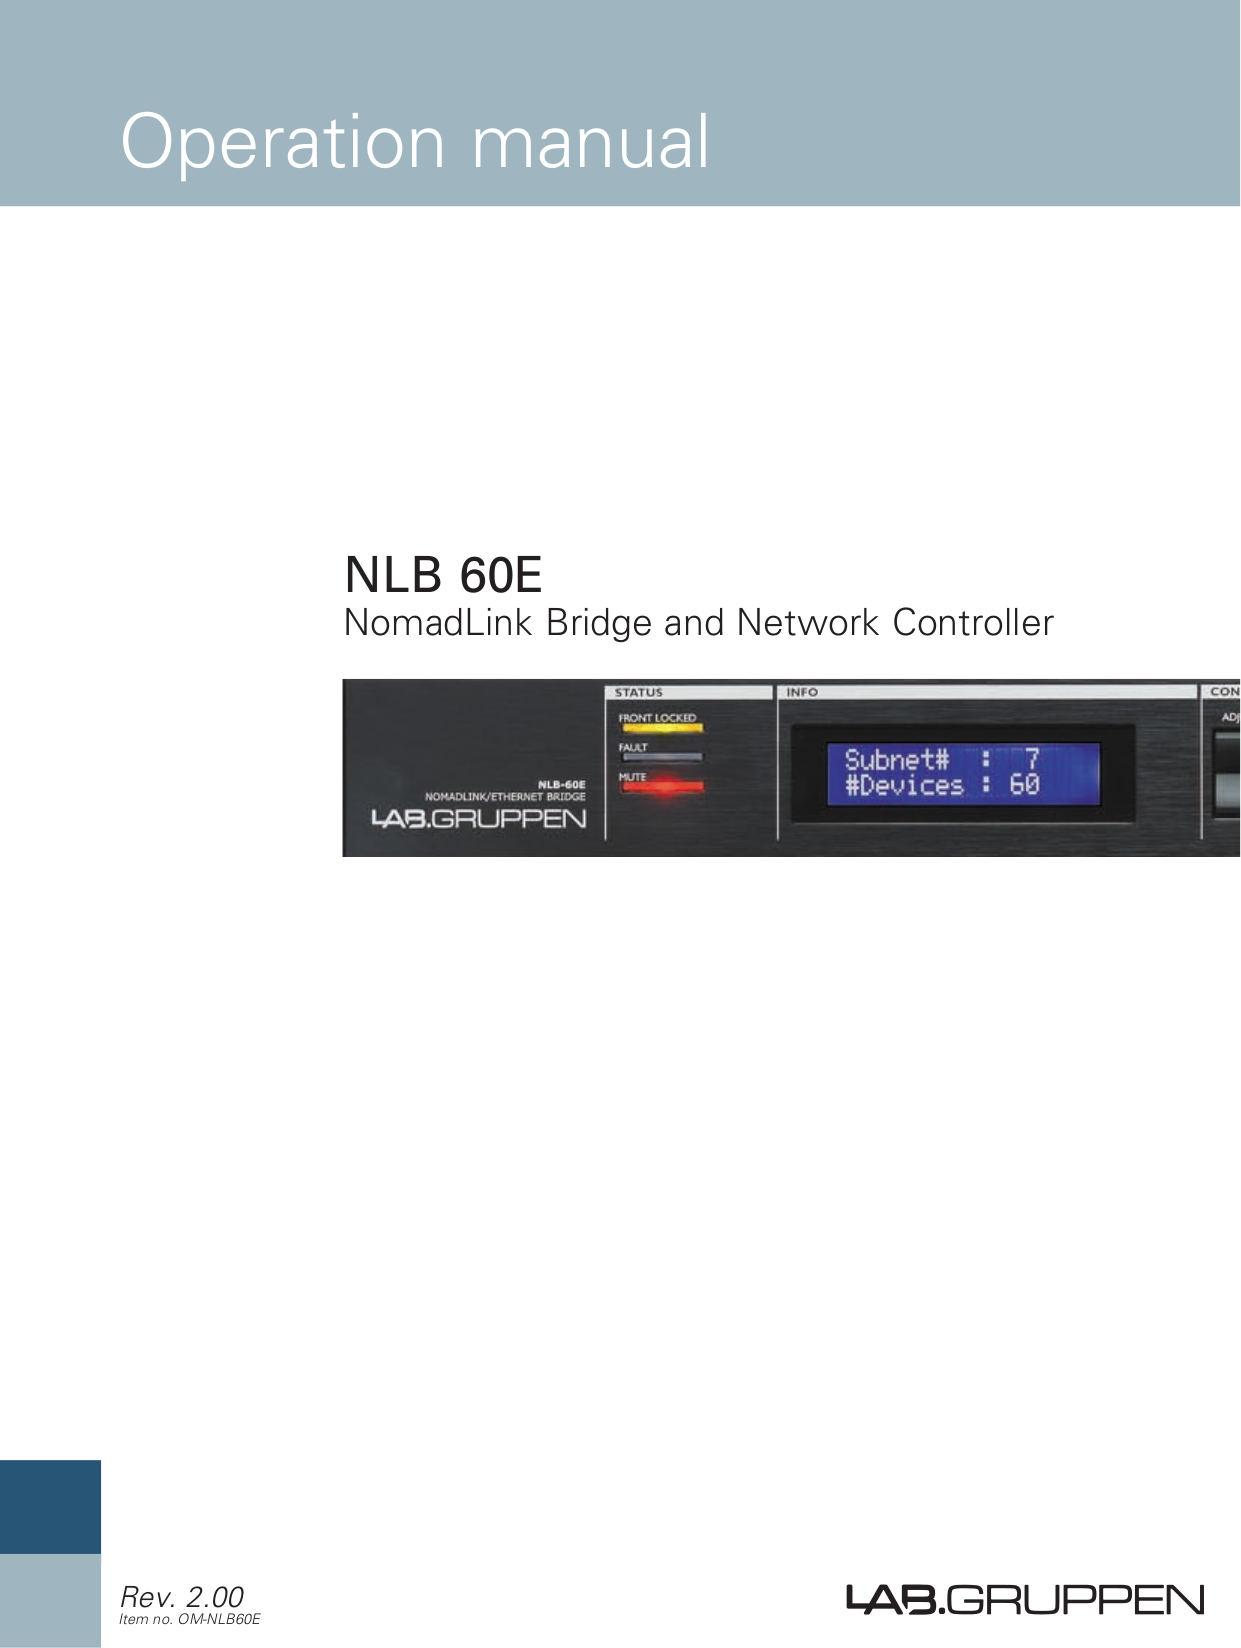 pdf for Lab.gruppen Other NLB 60E Controllers manual